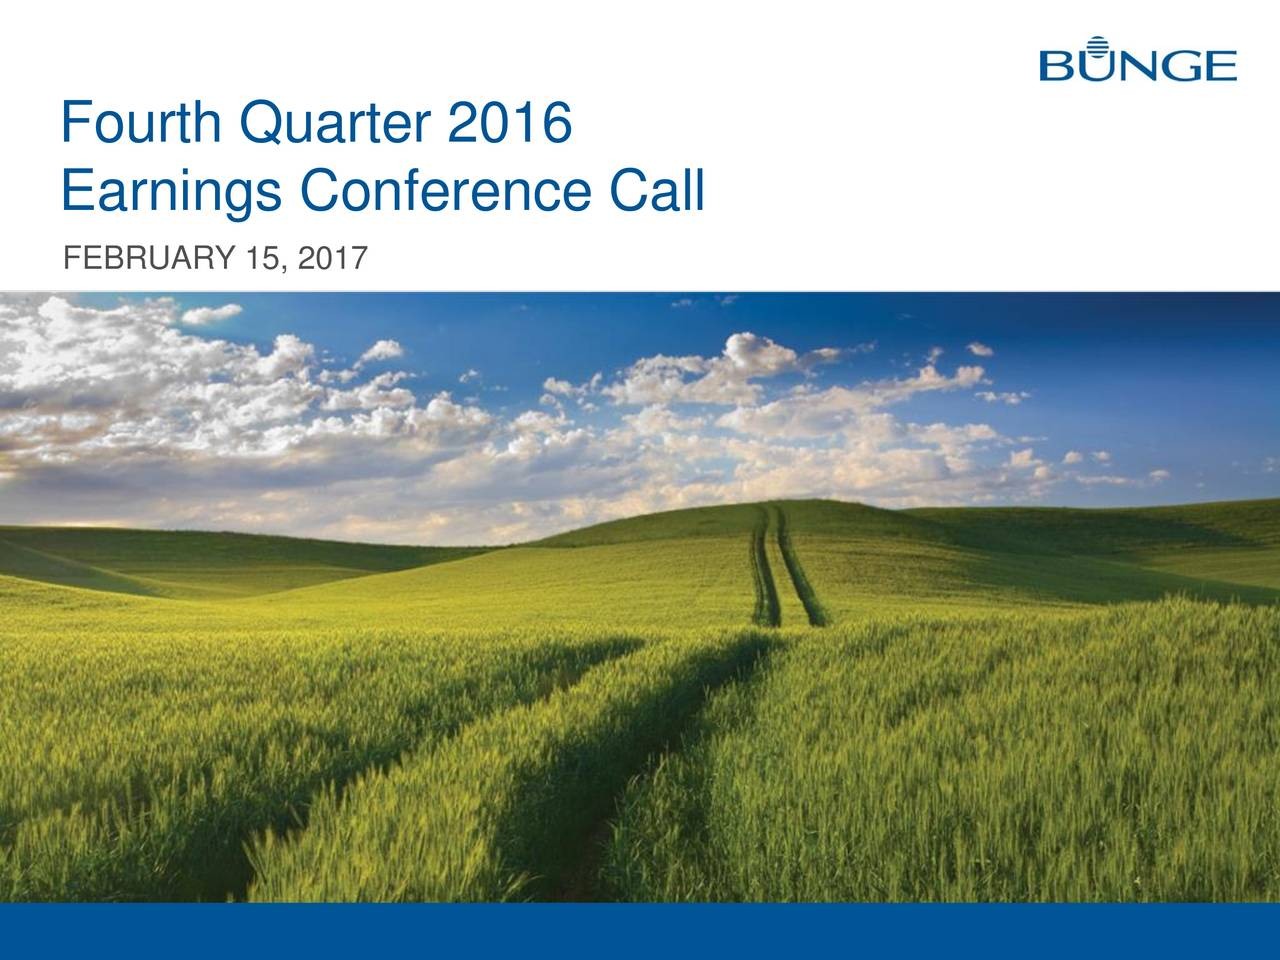 Earnings Conference Call FEBRUARY 15, 2017 1 FOURTH QUARTER 2016 EARNINGS CONFERENCE CALL